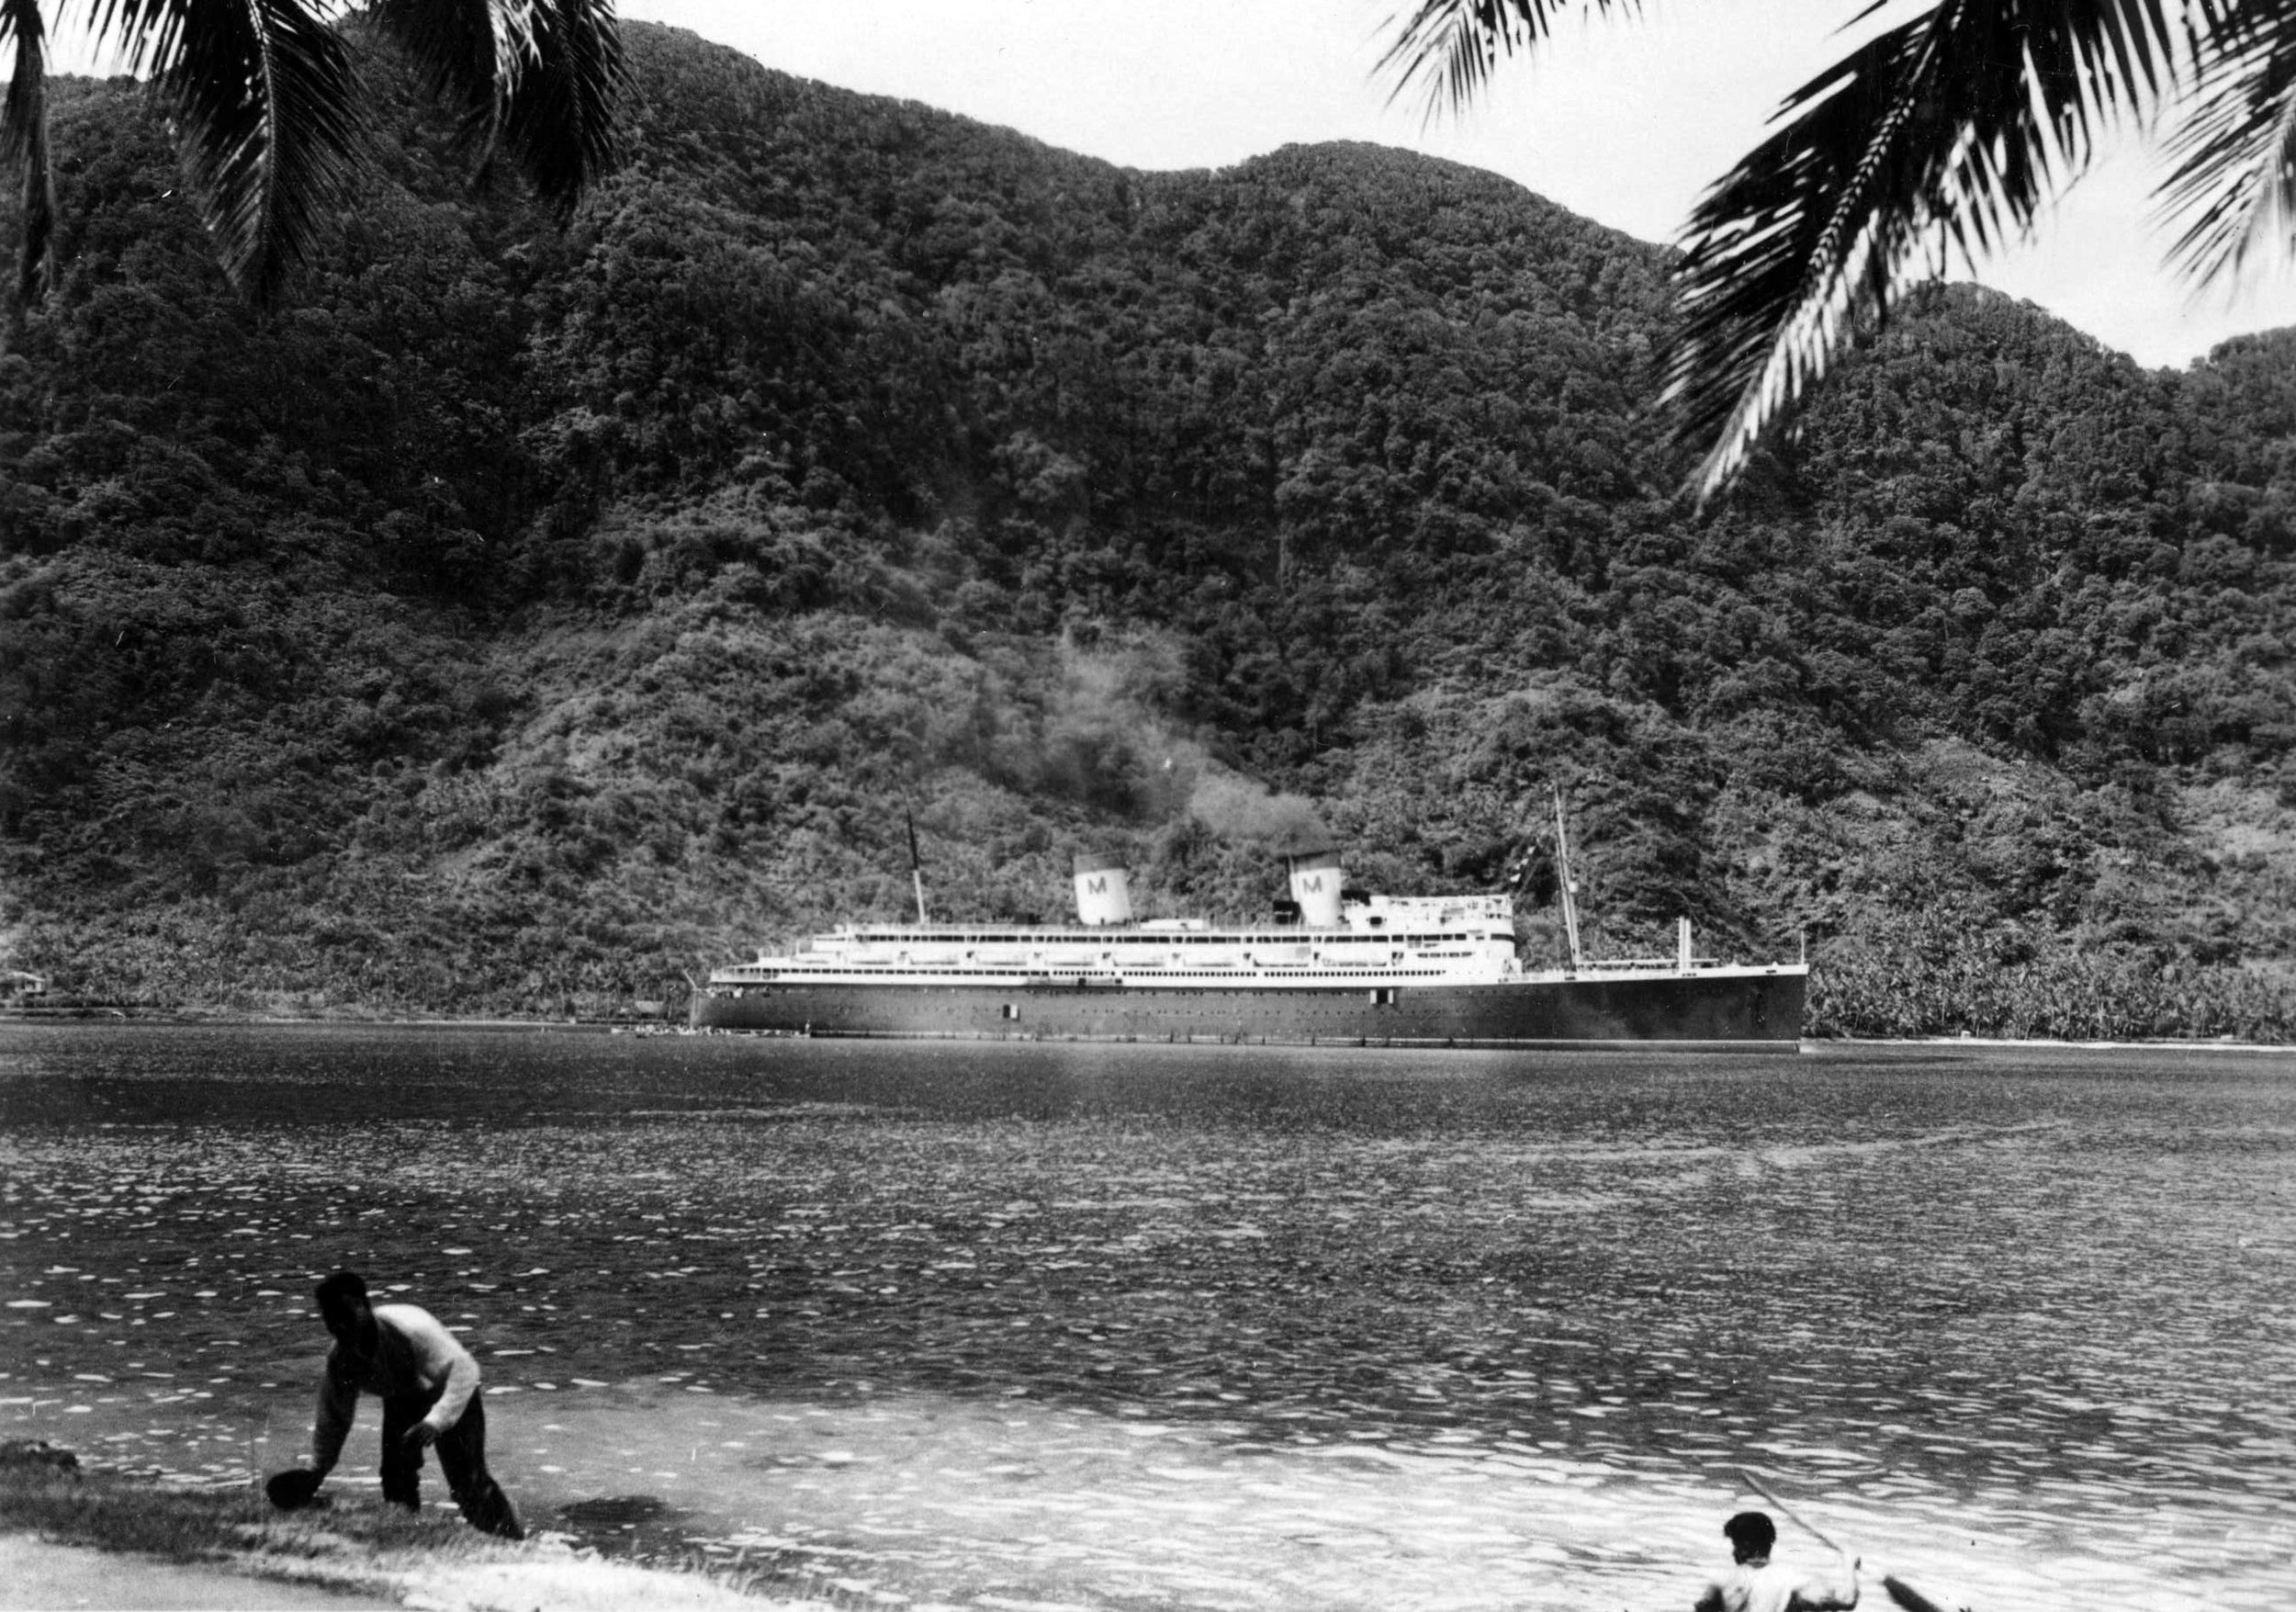 The SS Malolo in Pago Pago